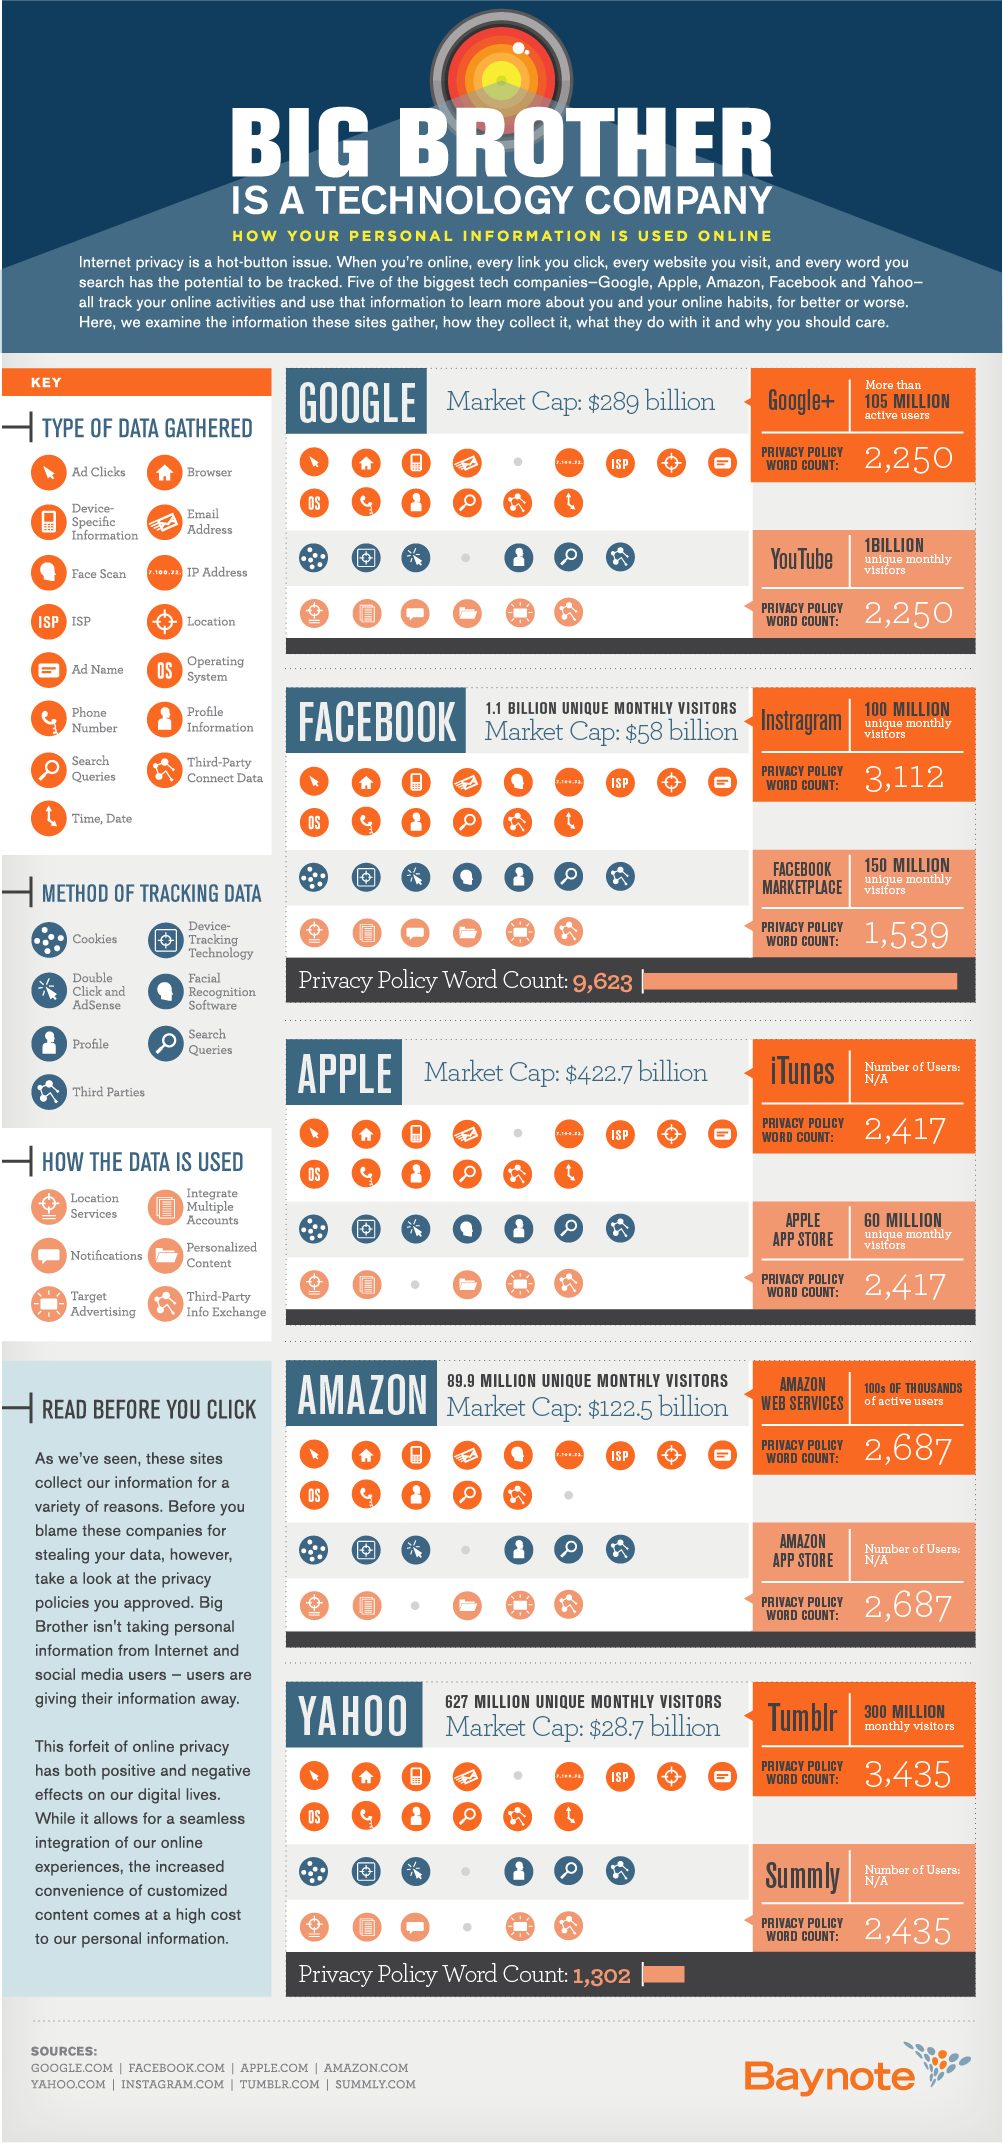 Infographic_Big_Brother_Tech_Company_06192013